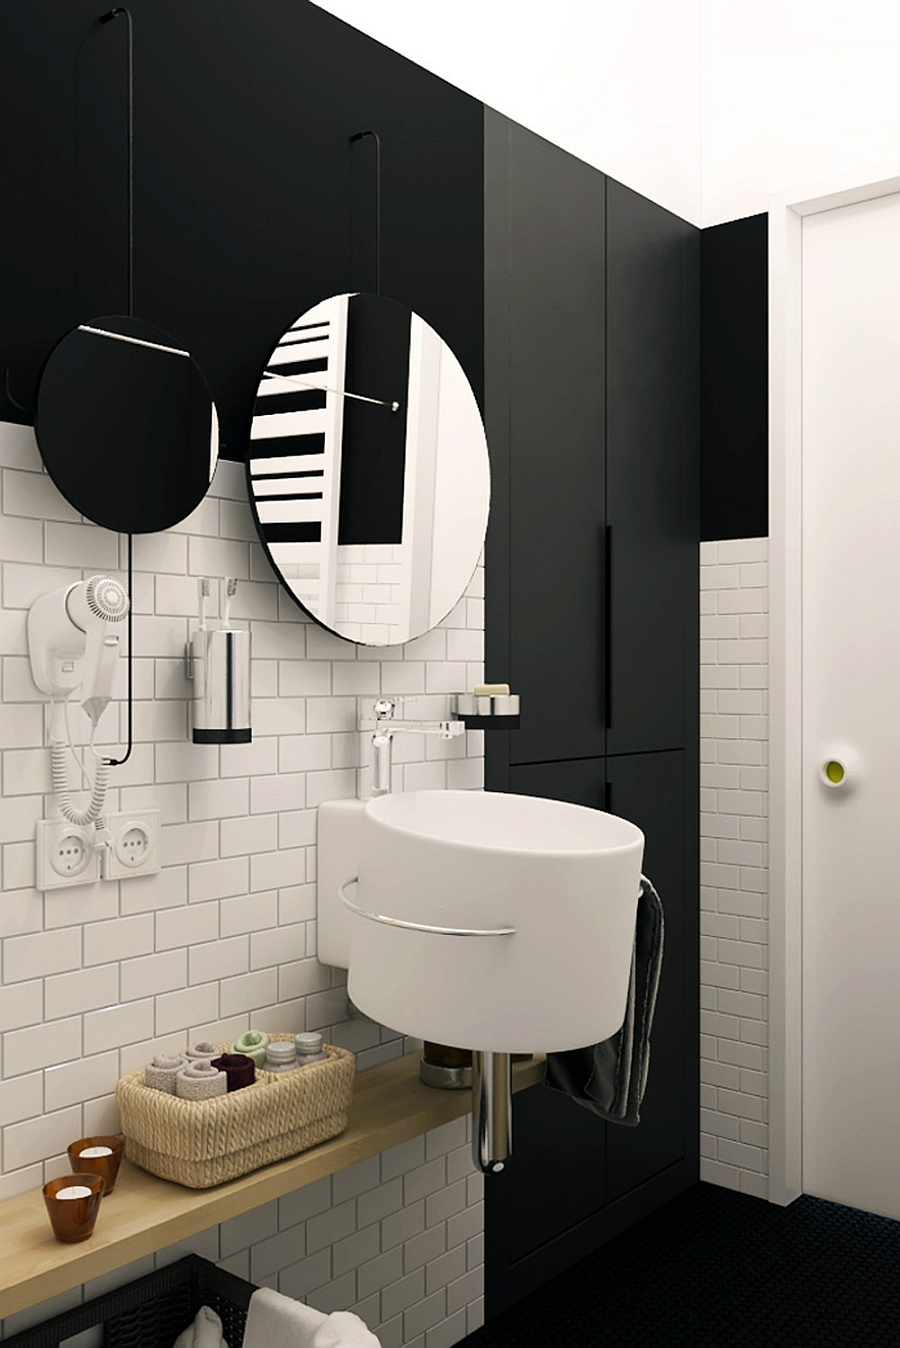 Stylish use of mirrors in the bathroom